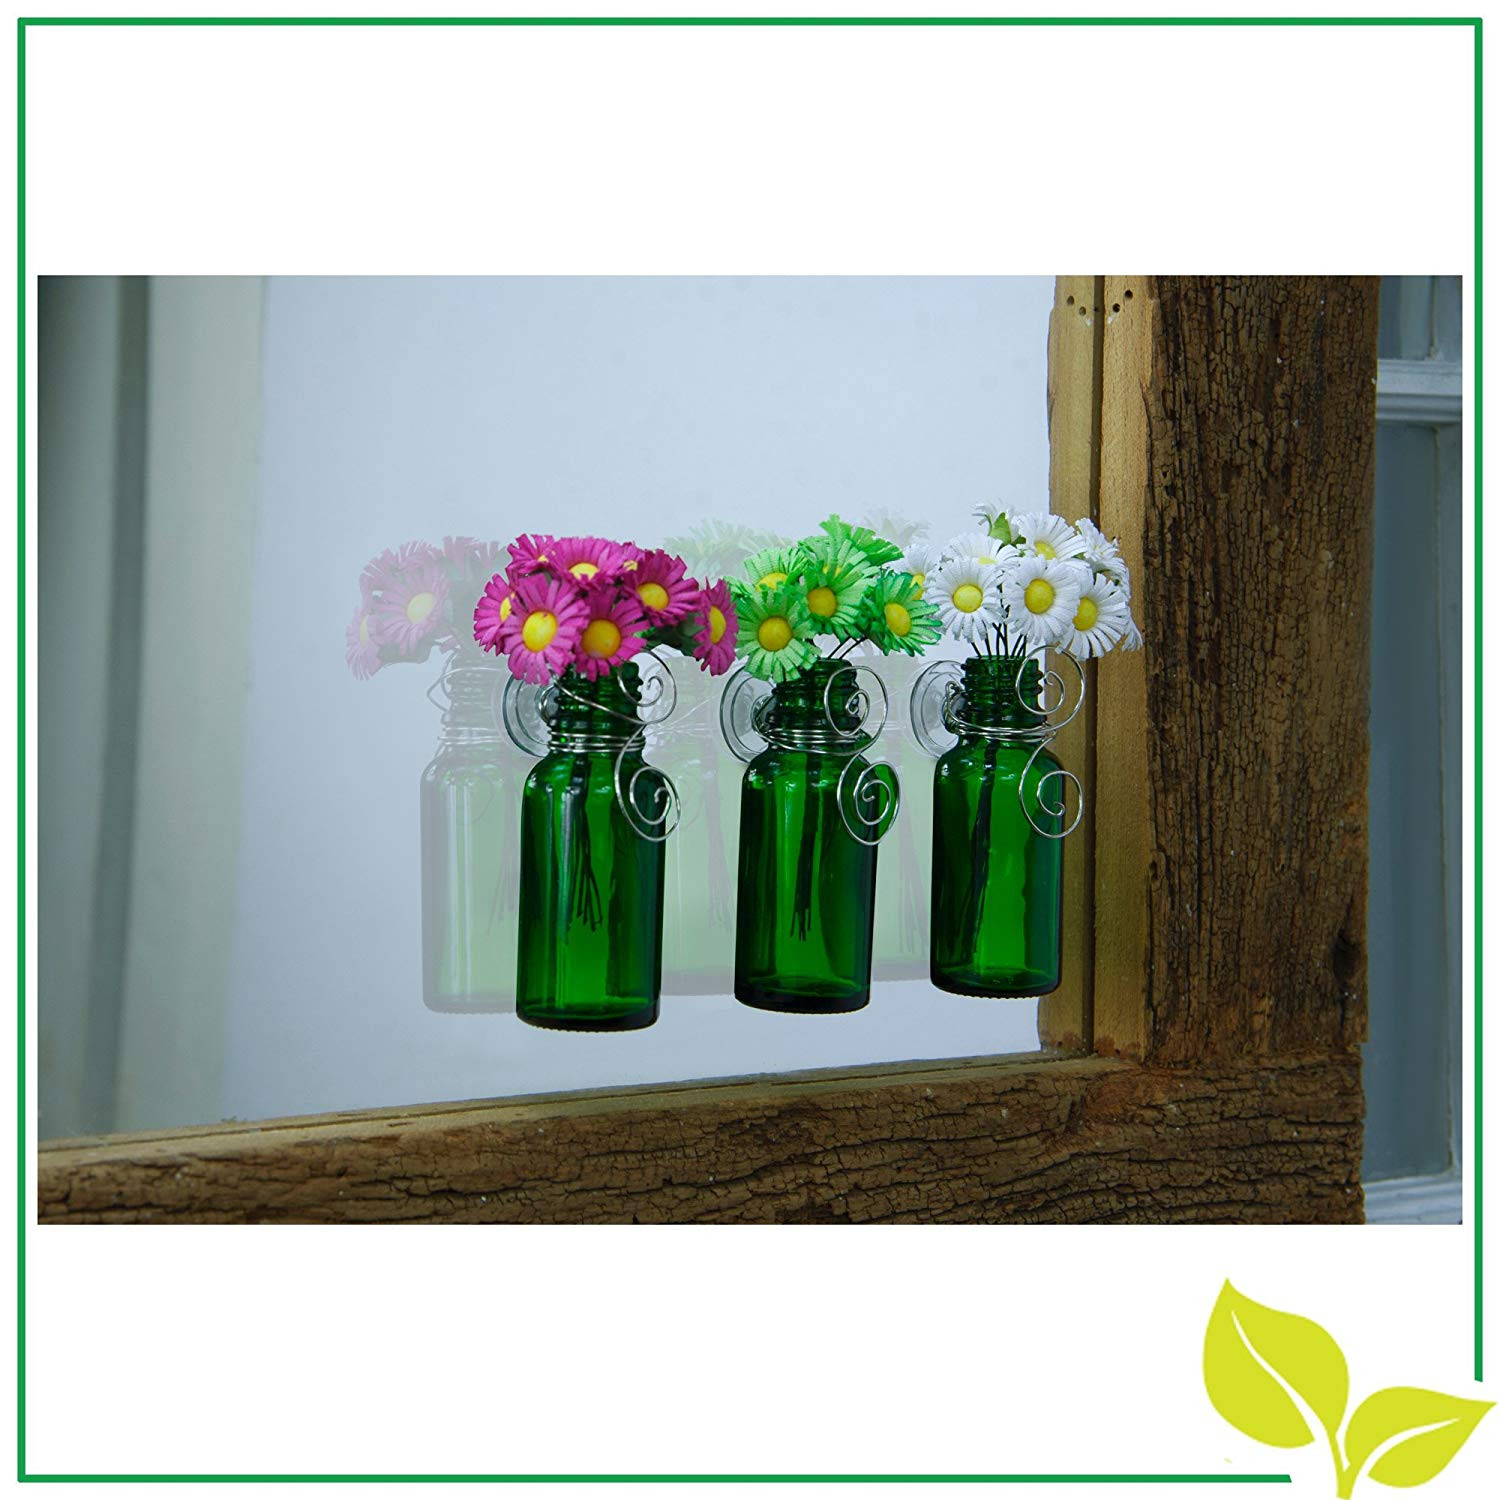 colored mini bud vases of amazon com vazzini mini vase bouquet suction cup bud bottle intended for amazon com vazzini mini vase bouquet suction cup bud bottle holder with flowers decorative